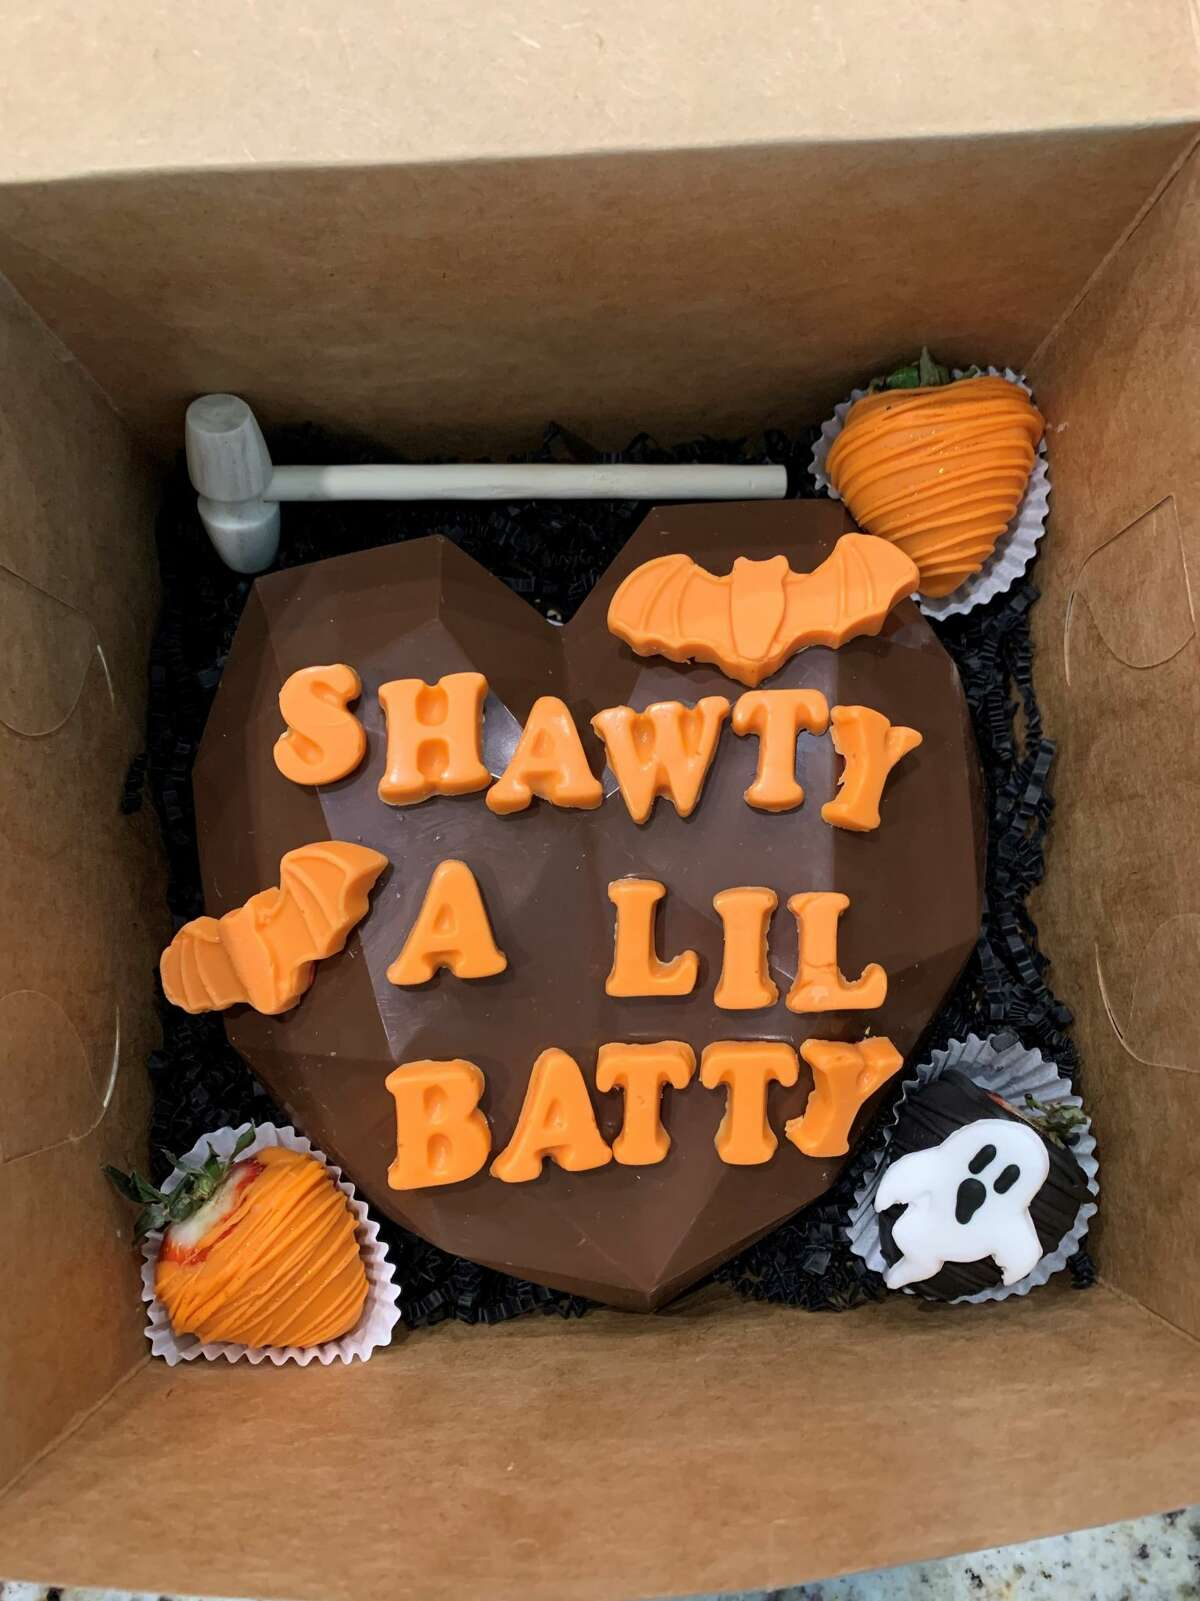 Meekaela Zimmer, a 20-year-old San Antonio College student, is making and selling Halloween-themed smash boxes for the spooky season.